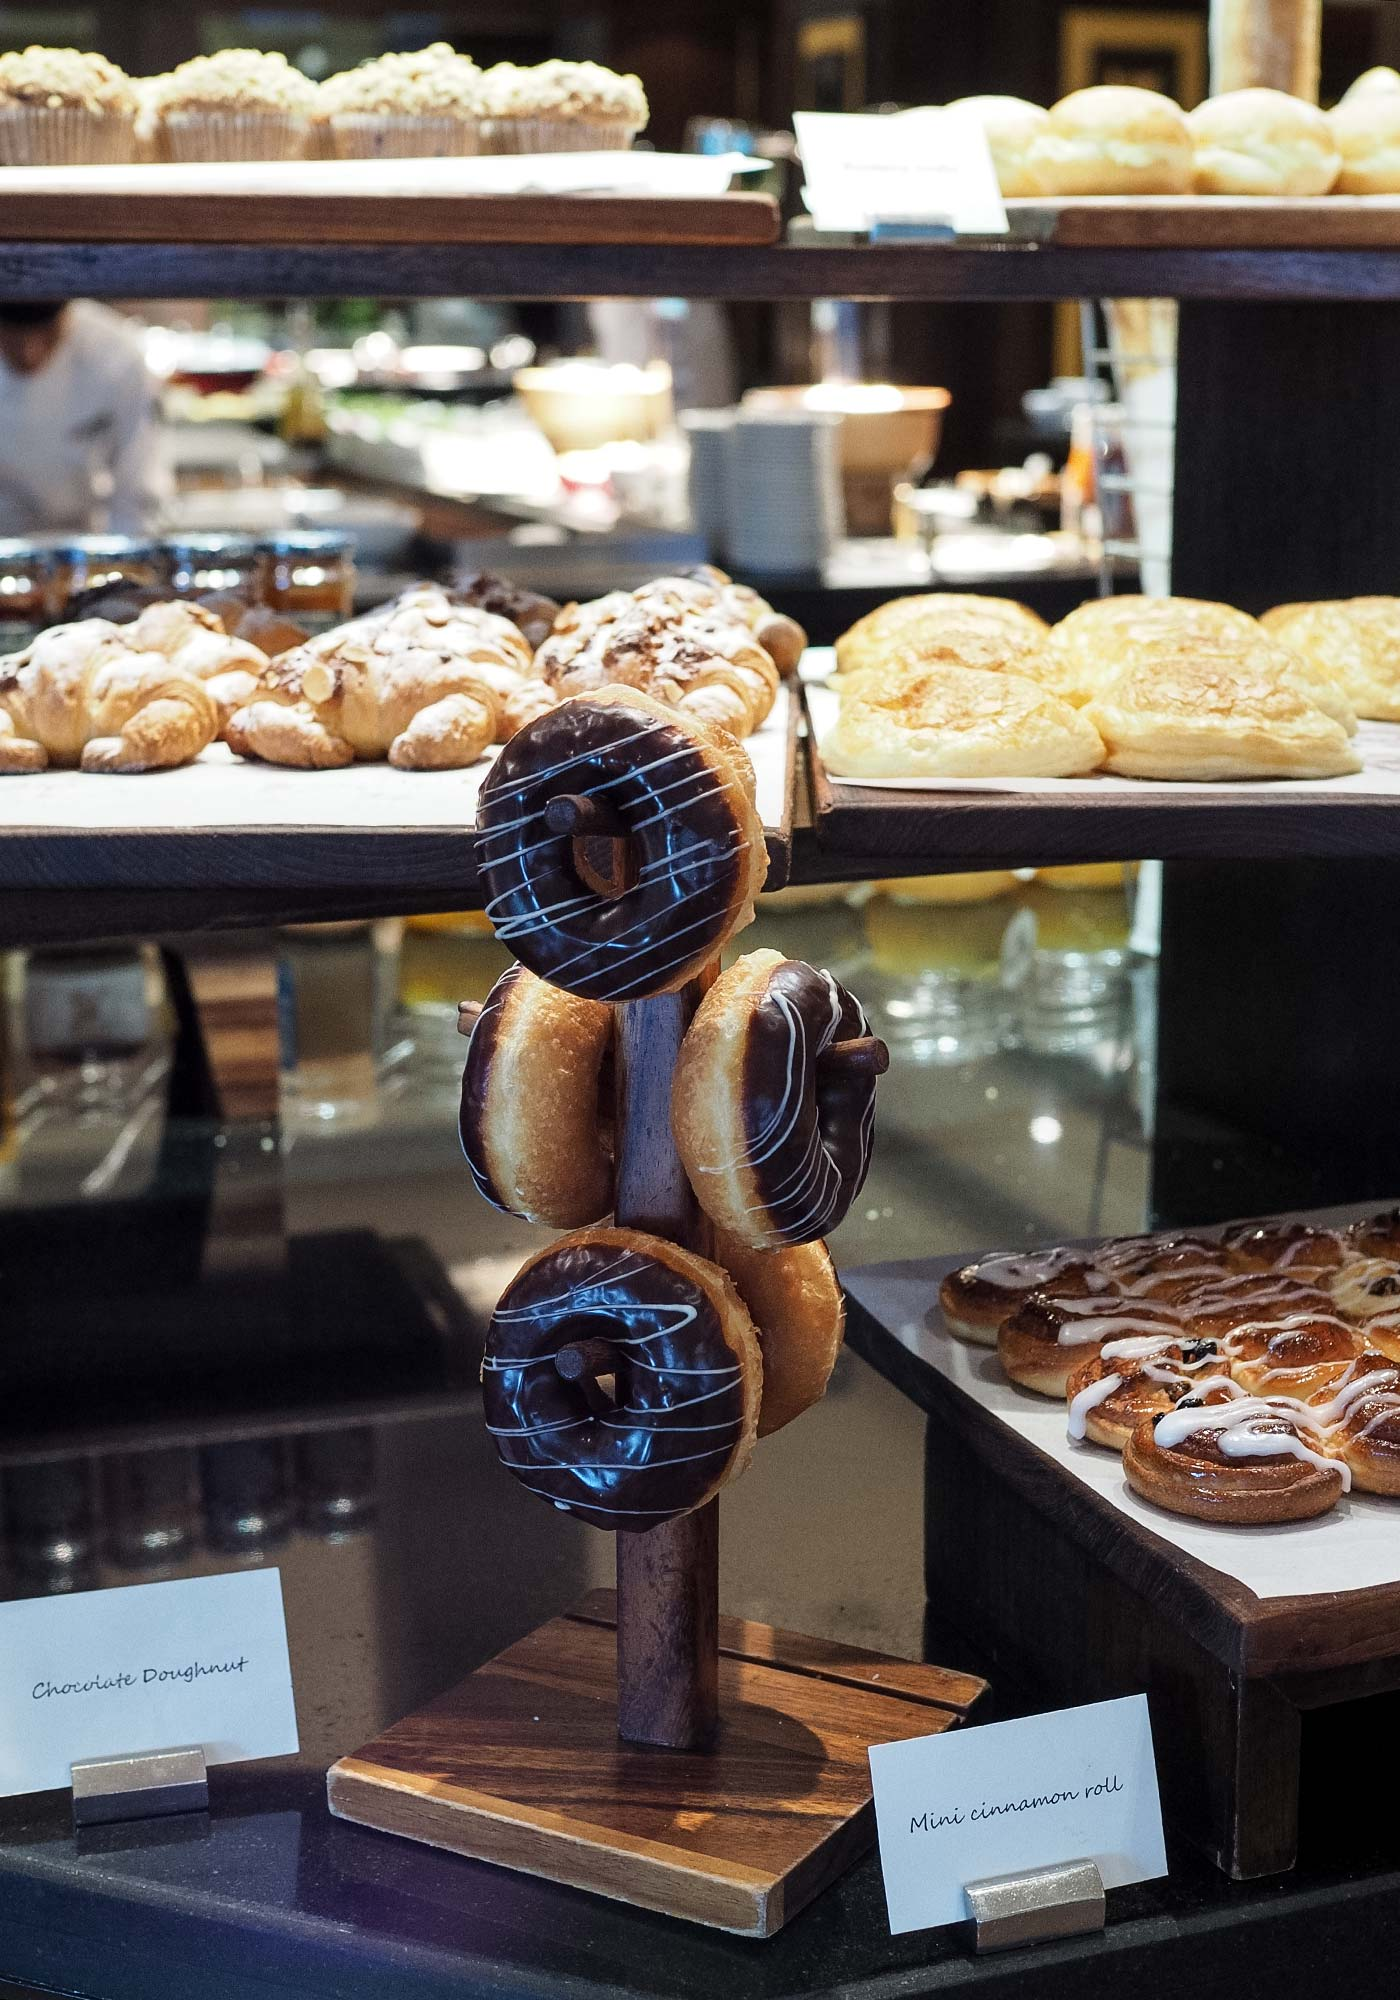 jw_marriott-bangkok-breakfast-donuts